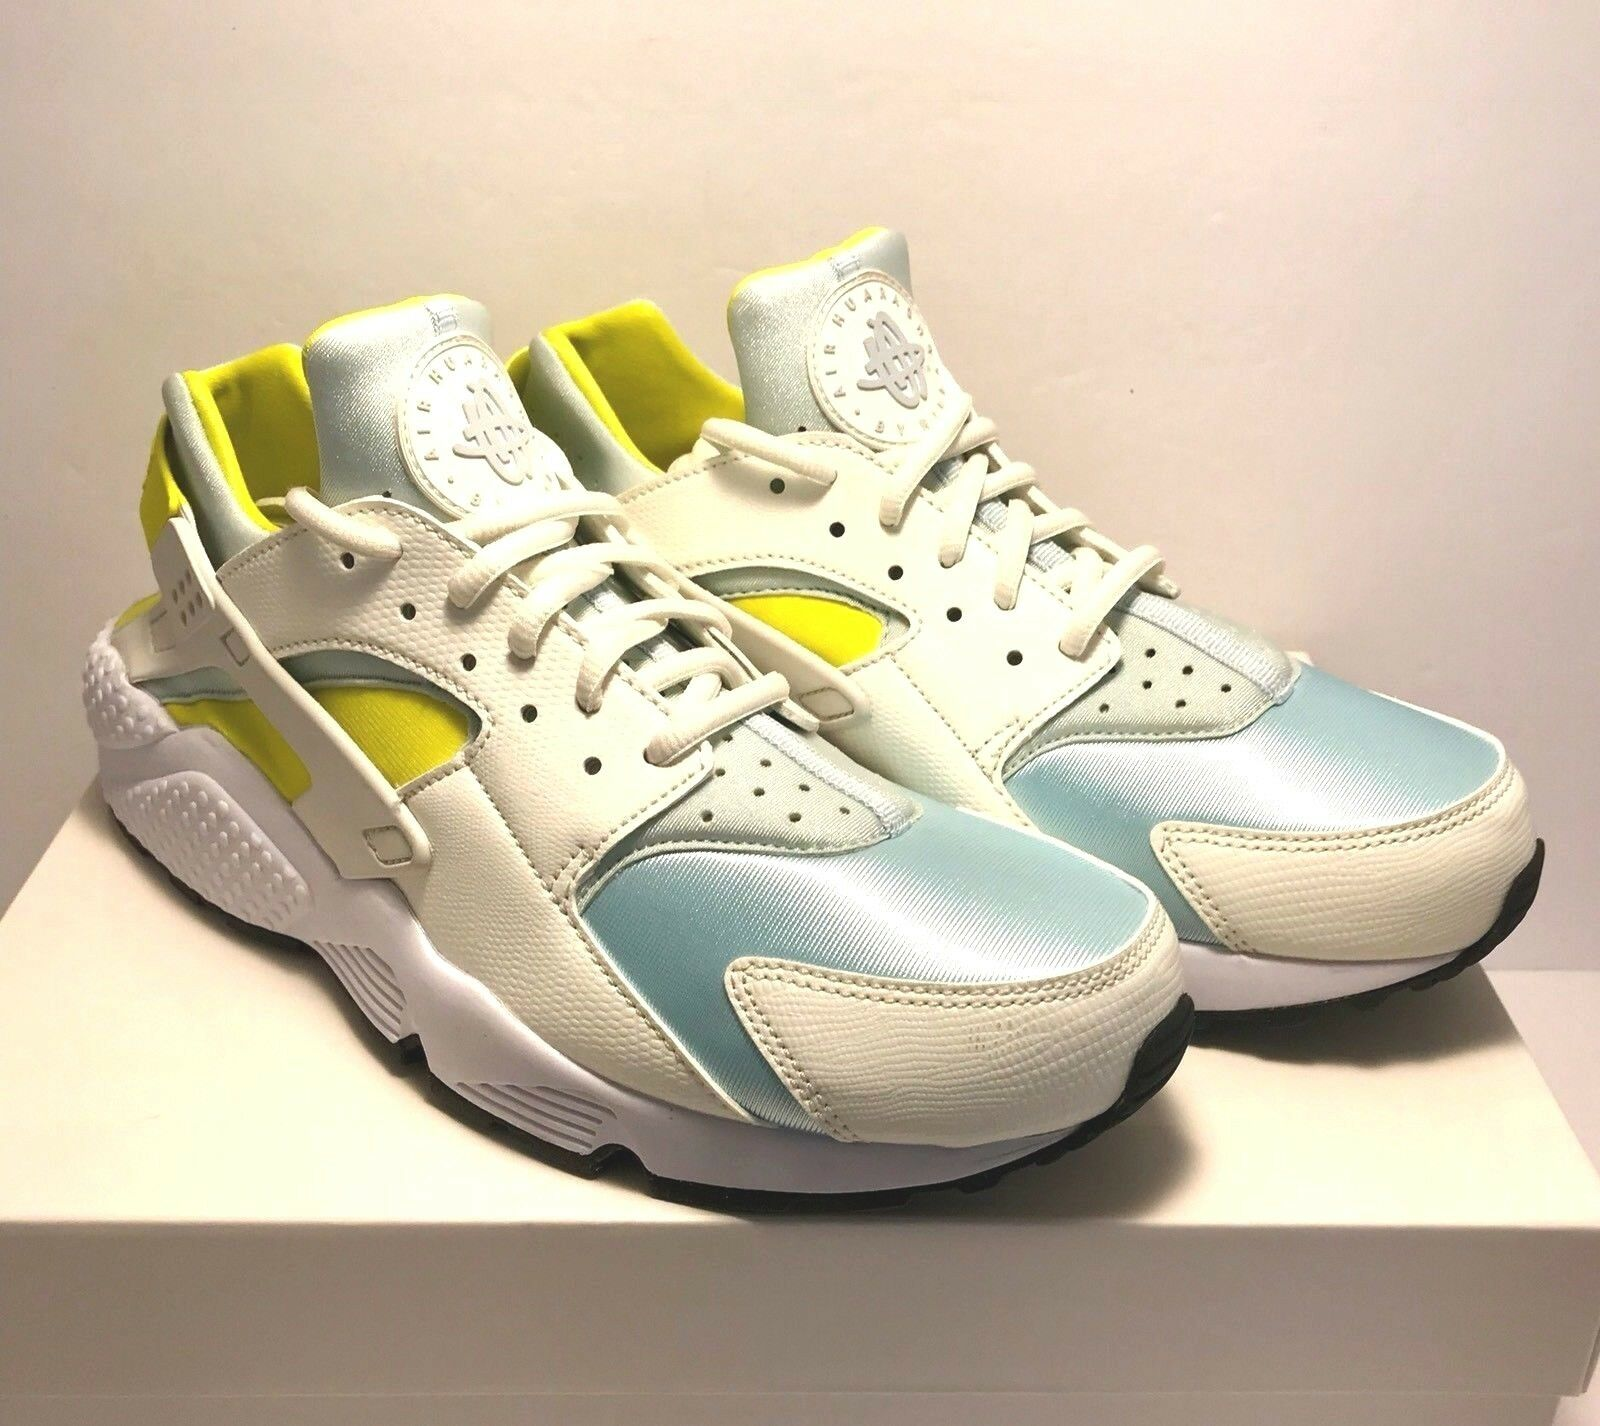 Nike Womens Size 11 Air Huarache Sail Glacier Blue Yellow Running Sneakers Shoes